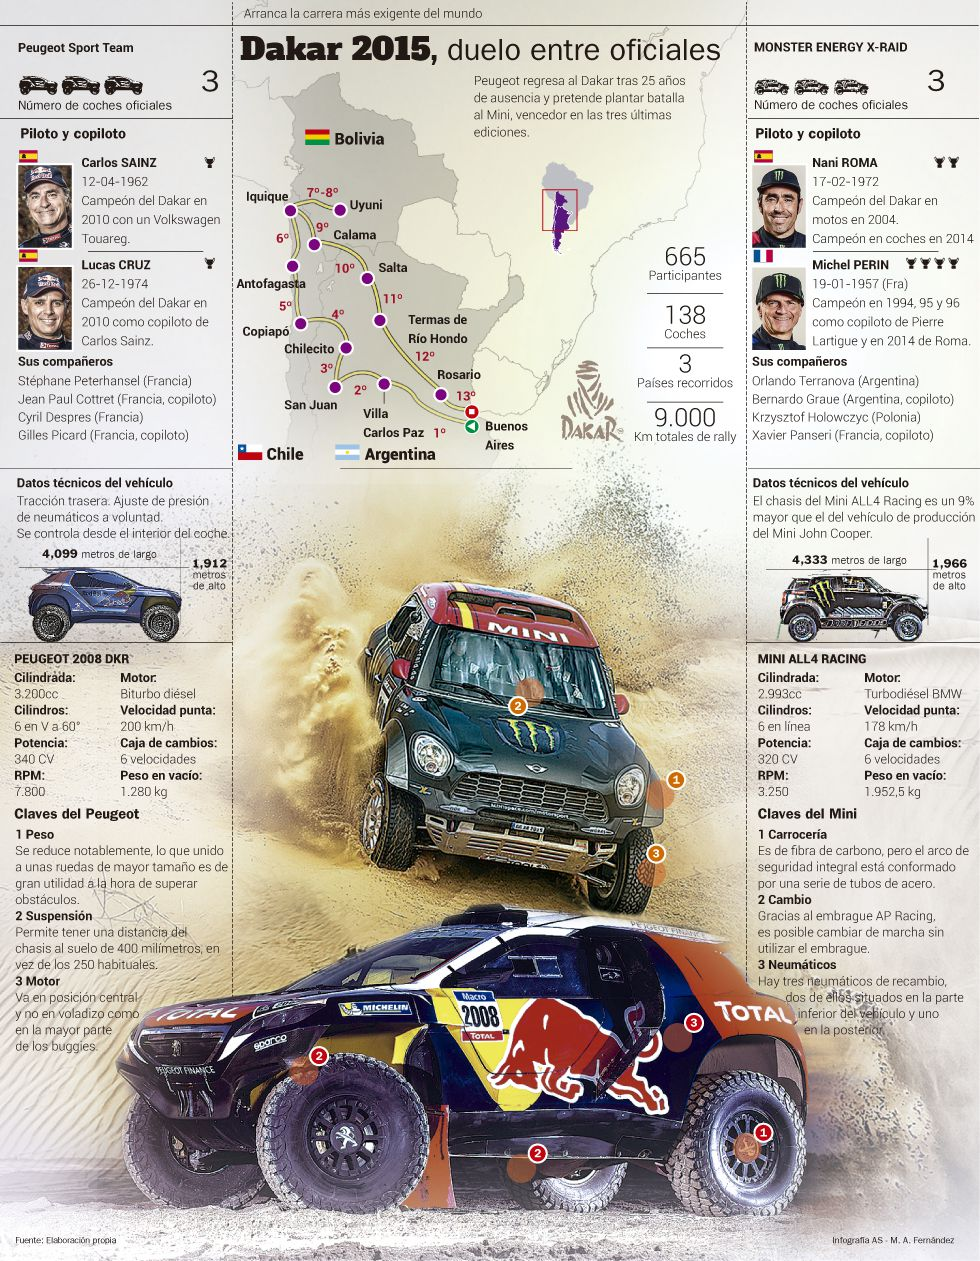 Rally Dakar 2015 (coches) 1420242418_060862_1420242644_noticia_grande